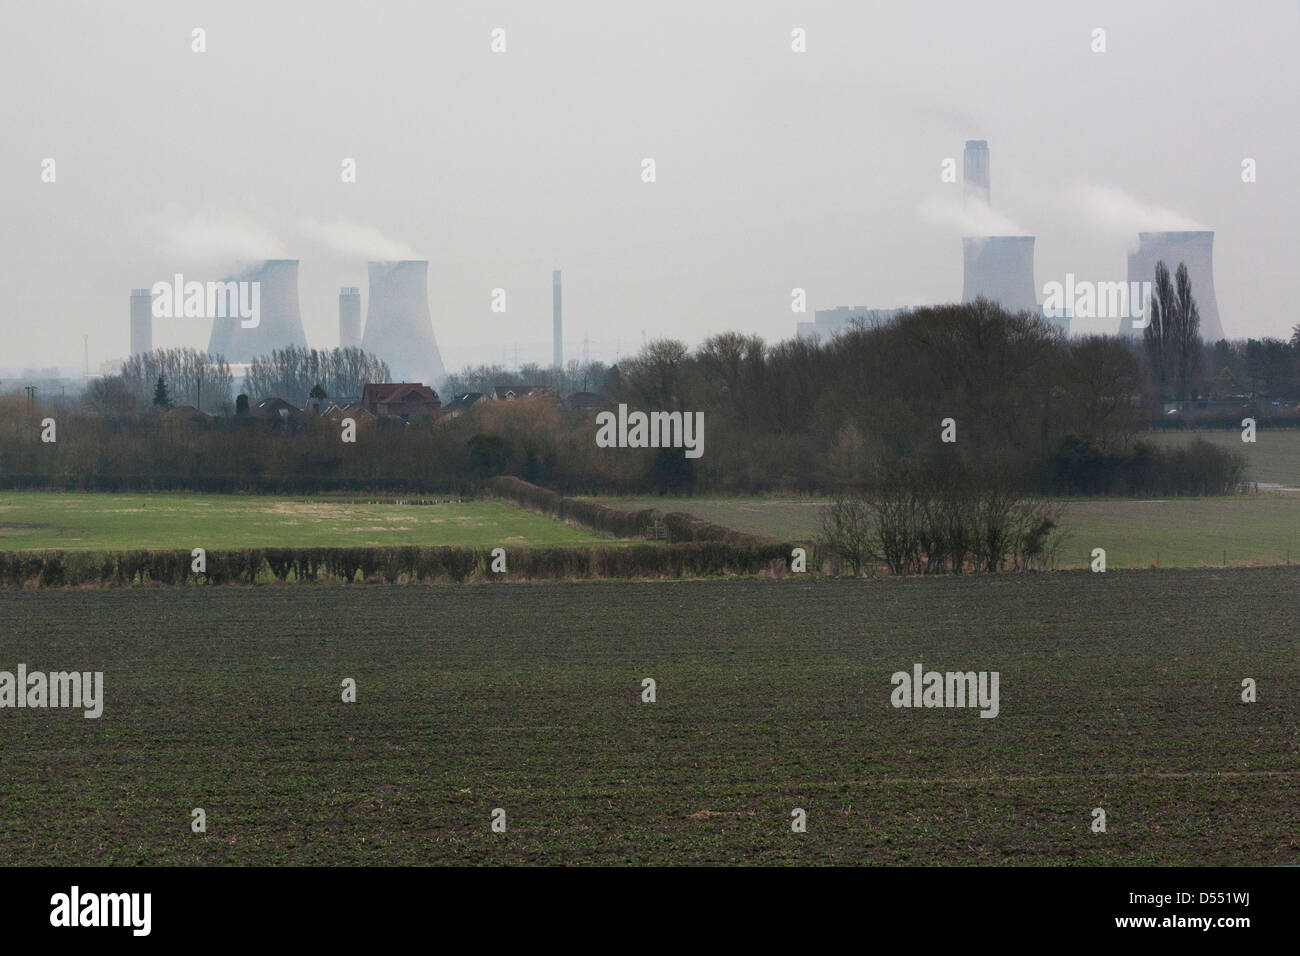 Didcot Power Stations last day of producing electricity when coal fired, its cooling towers producing steam clouds. - Stock Image